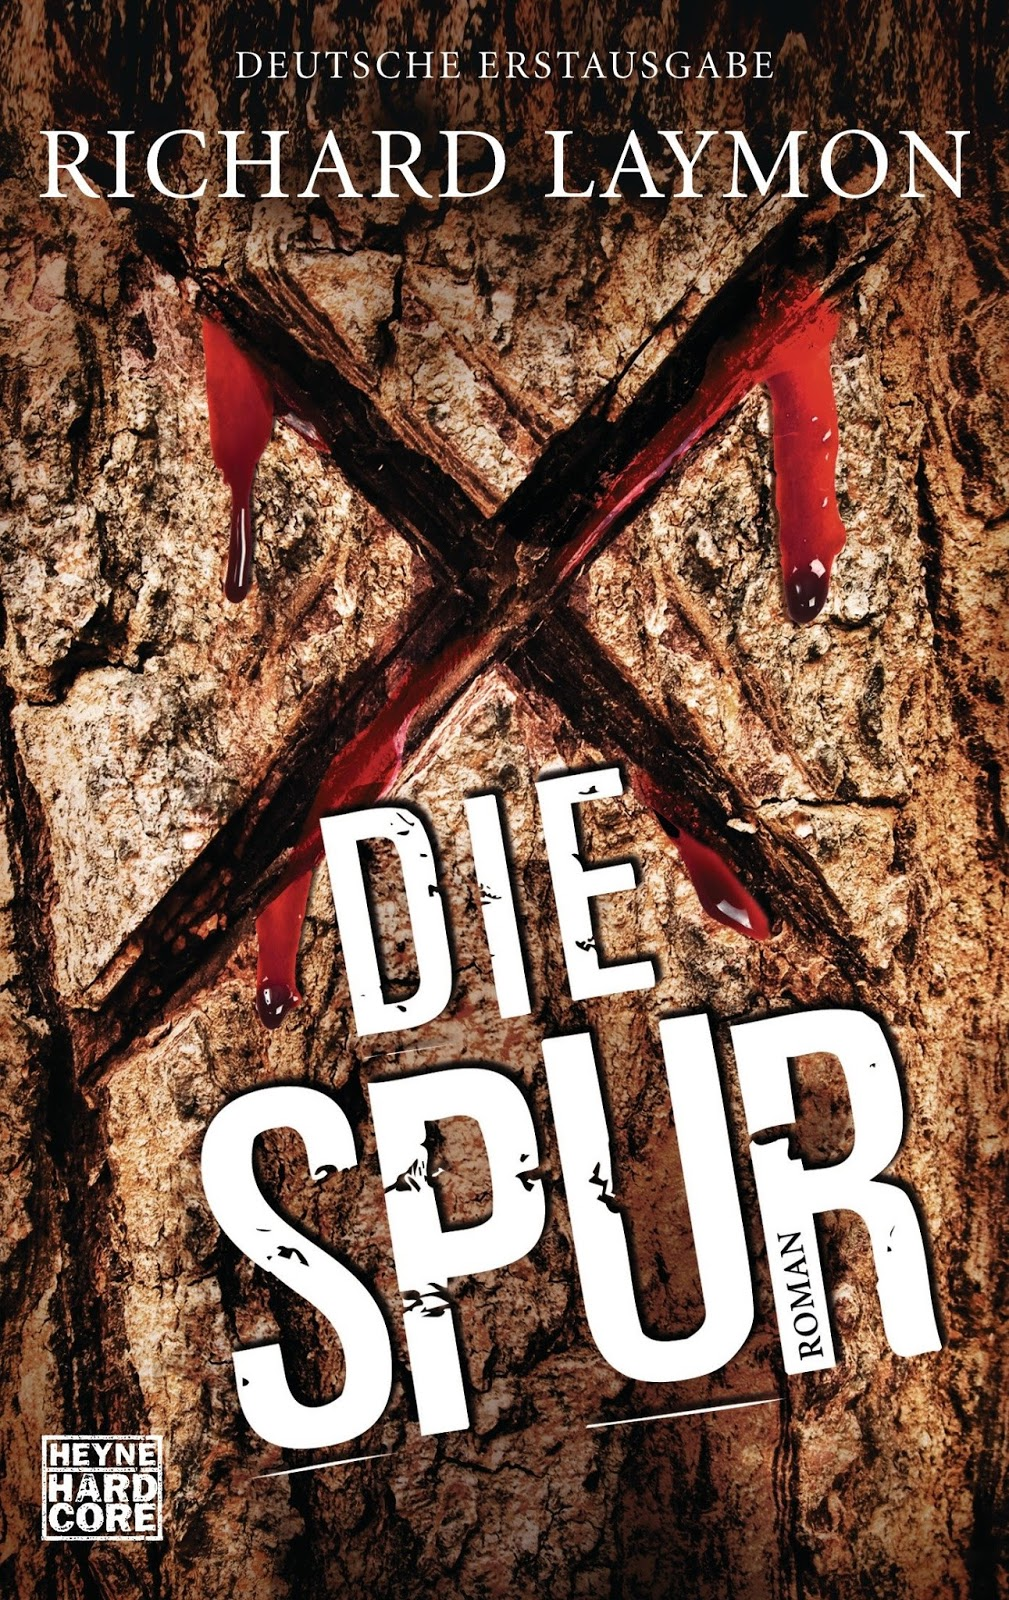 http://nothingbutn9erz.blogspot.co.at/2015/10/die-spur-richard-laymon-heyne-rezension.html